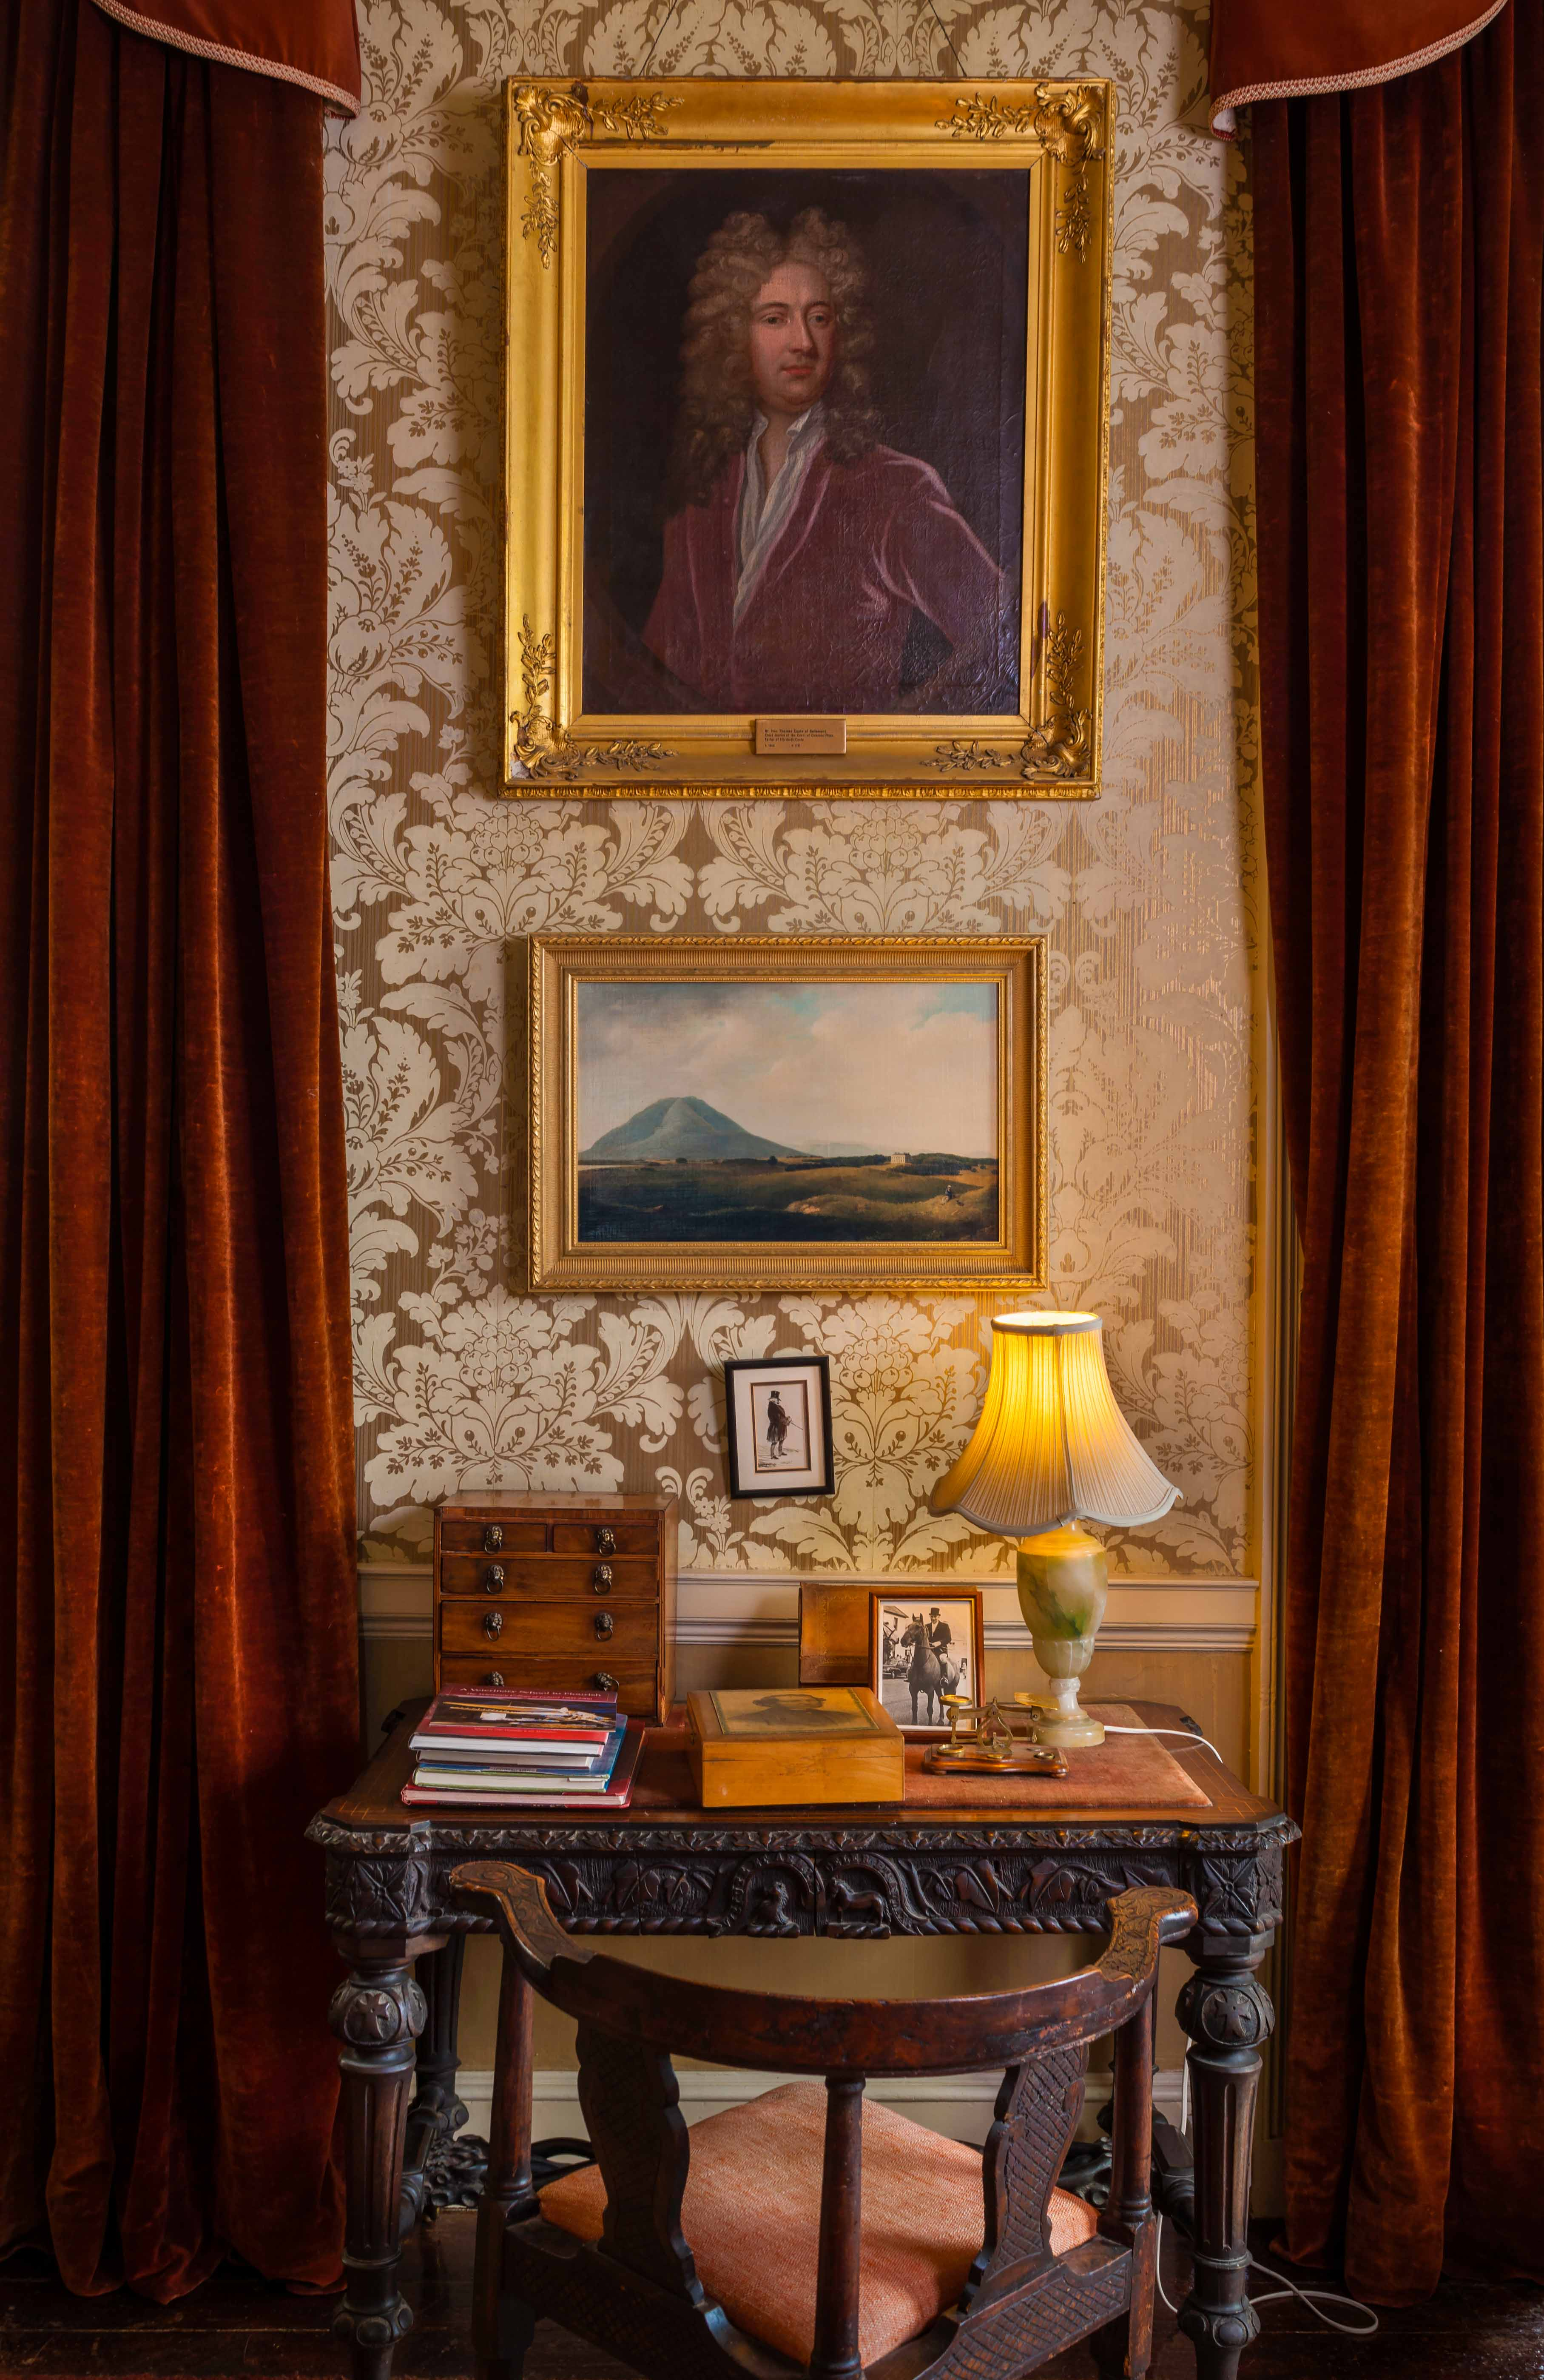 Interiors-photographer-Mayo-Ireland-Enniscoe-House-66571